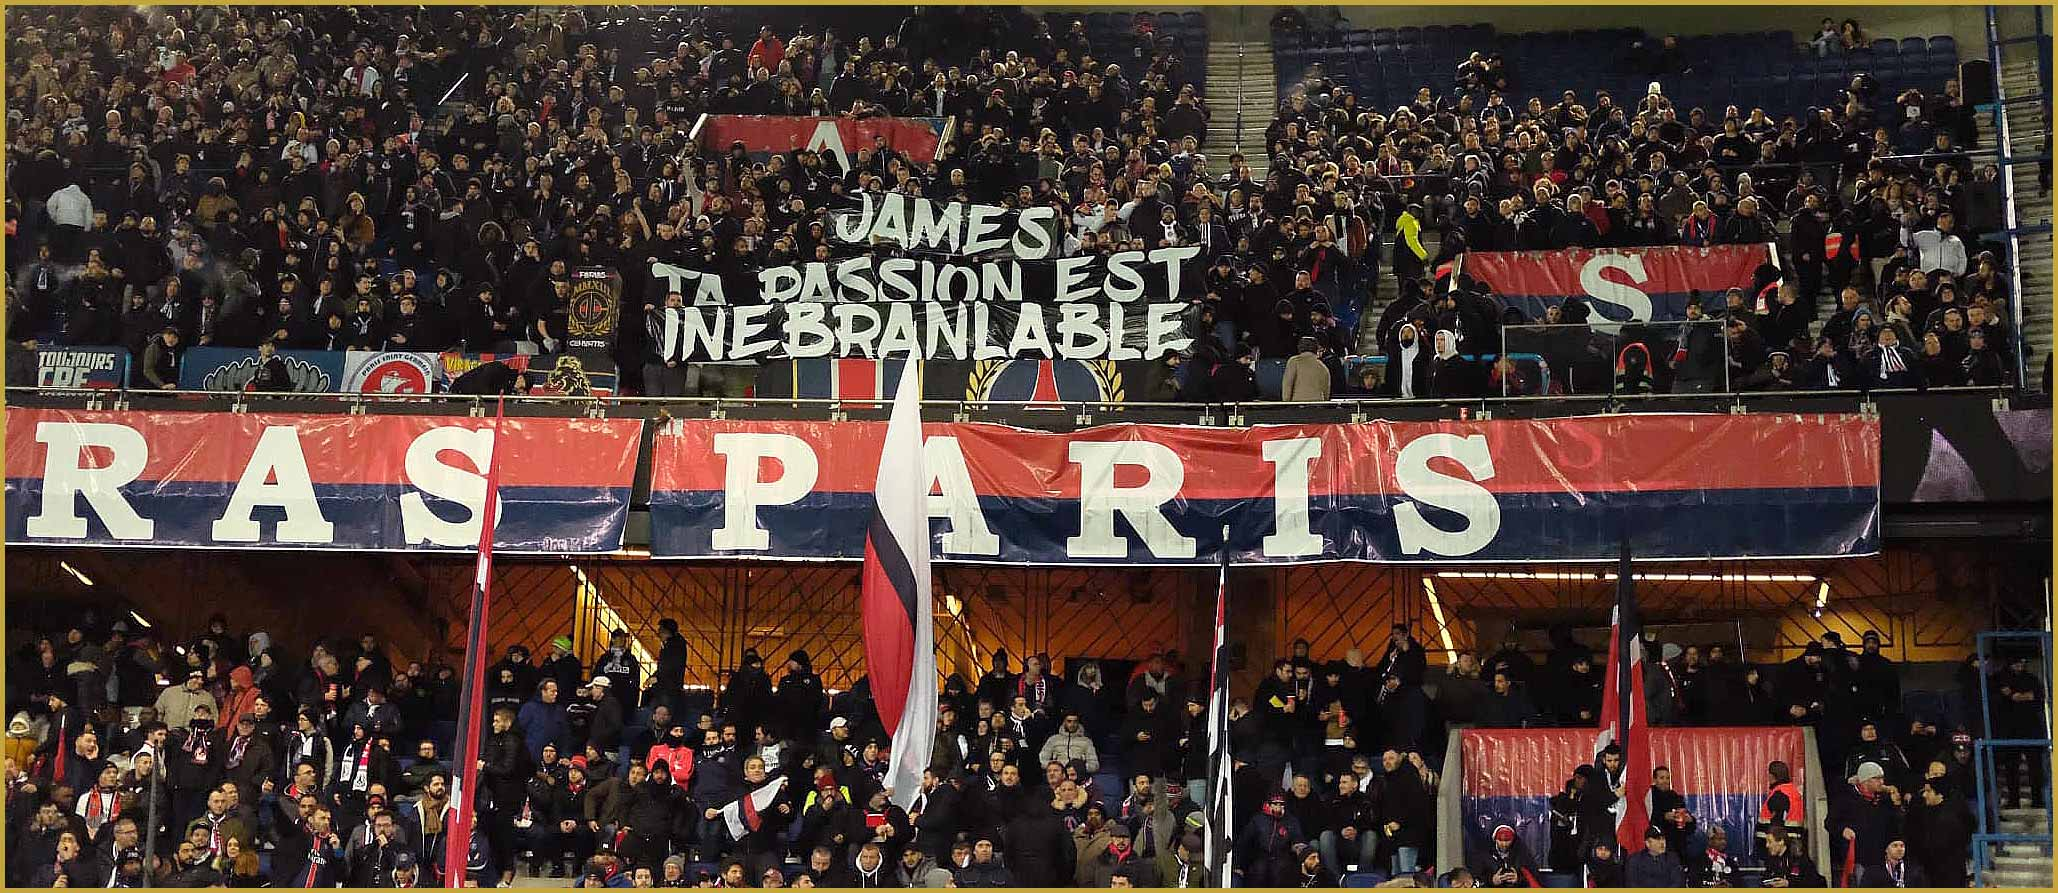 ITW James Rophe Virage PSG